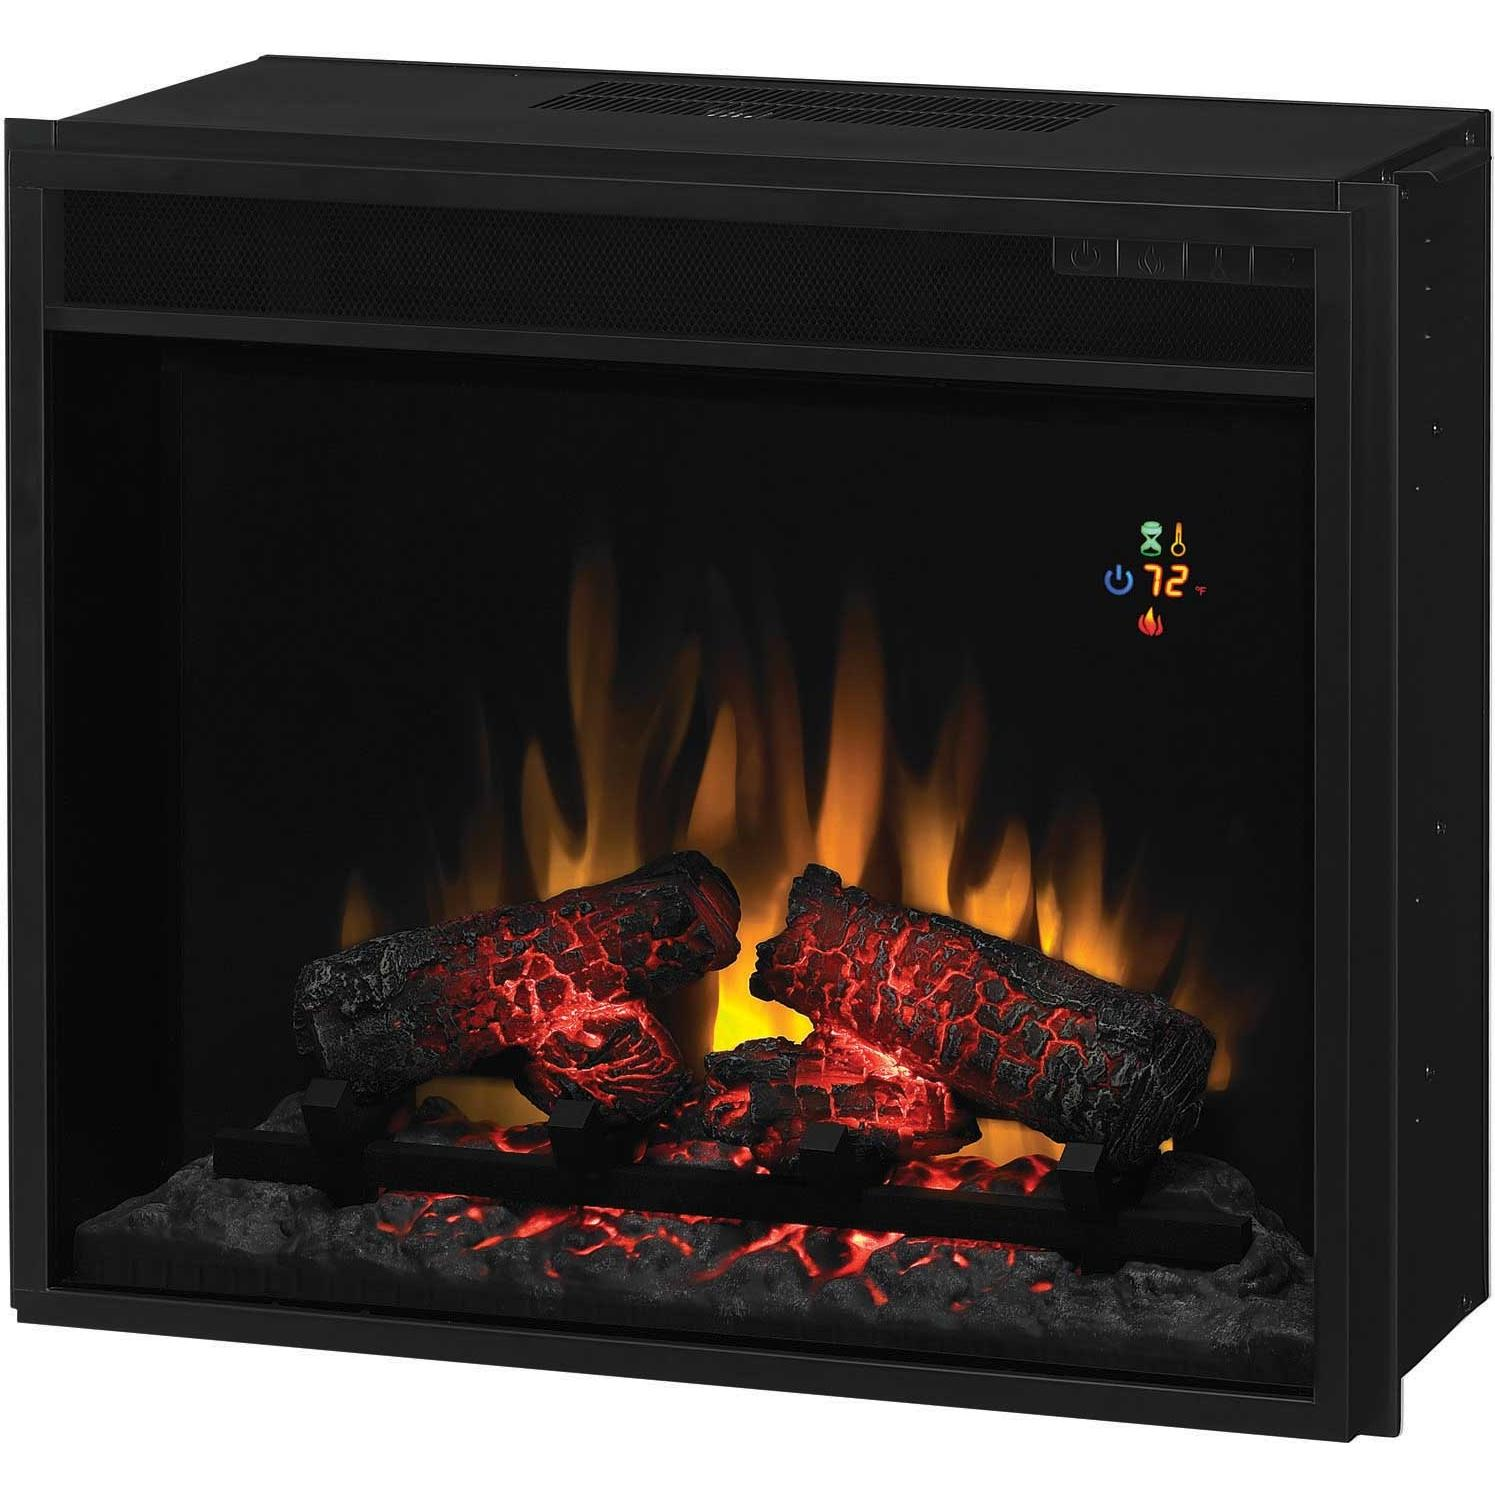 ClassicFlame 23EF022GRA 23 Inch Fixed Front Electric Fireplace Insert With Backlit Display And Remote - Black